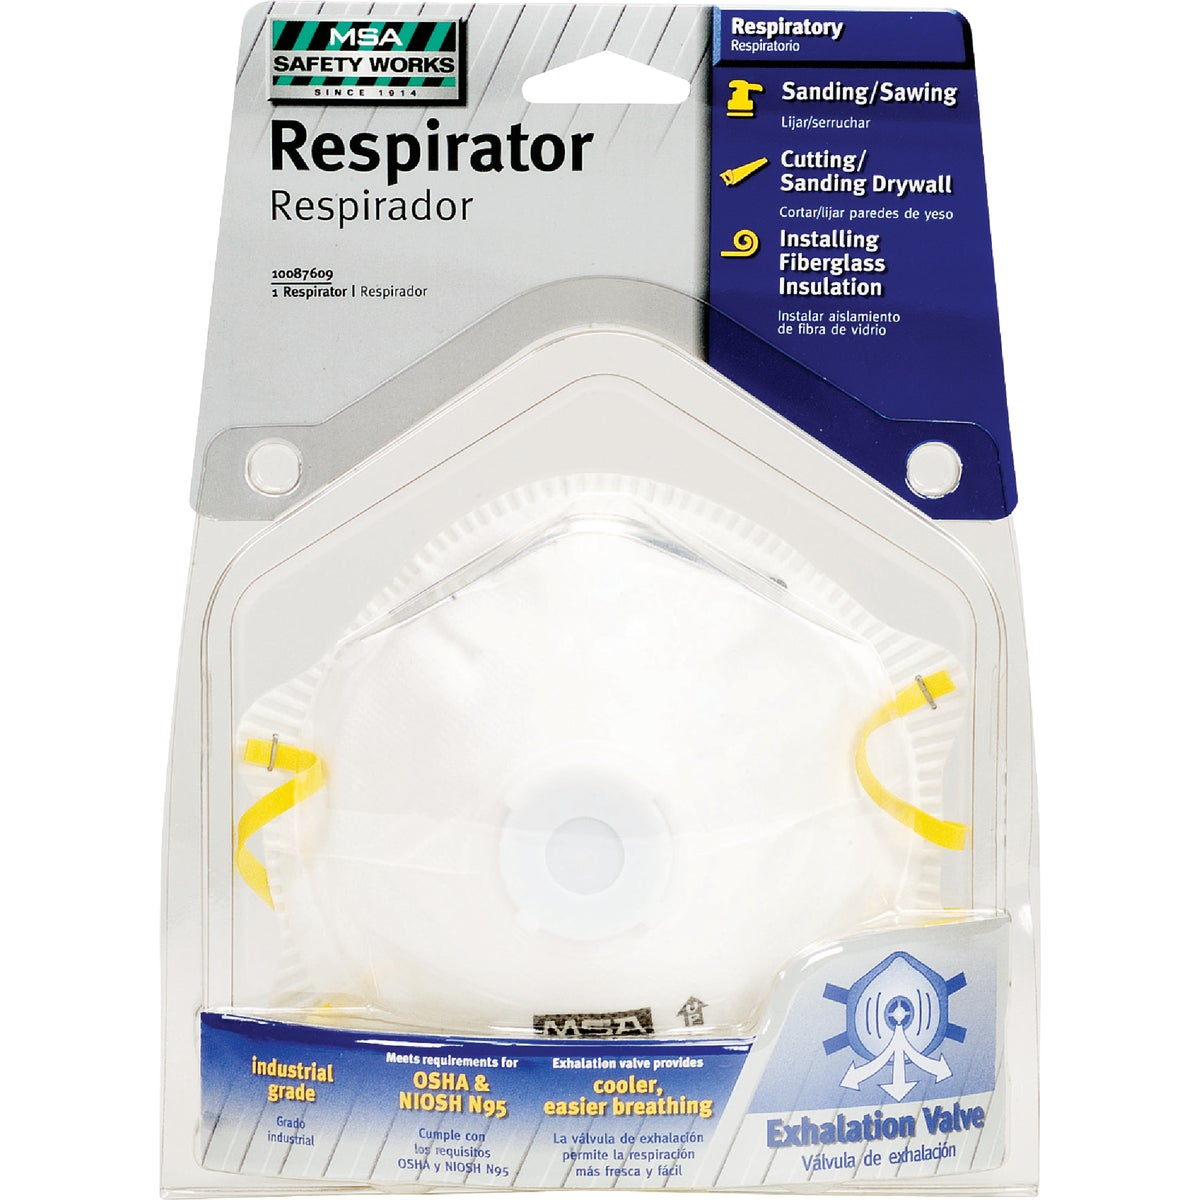 N95 RESPIRATOR W/VALVE - 10103821 by Msa Safety